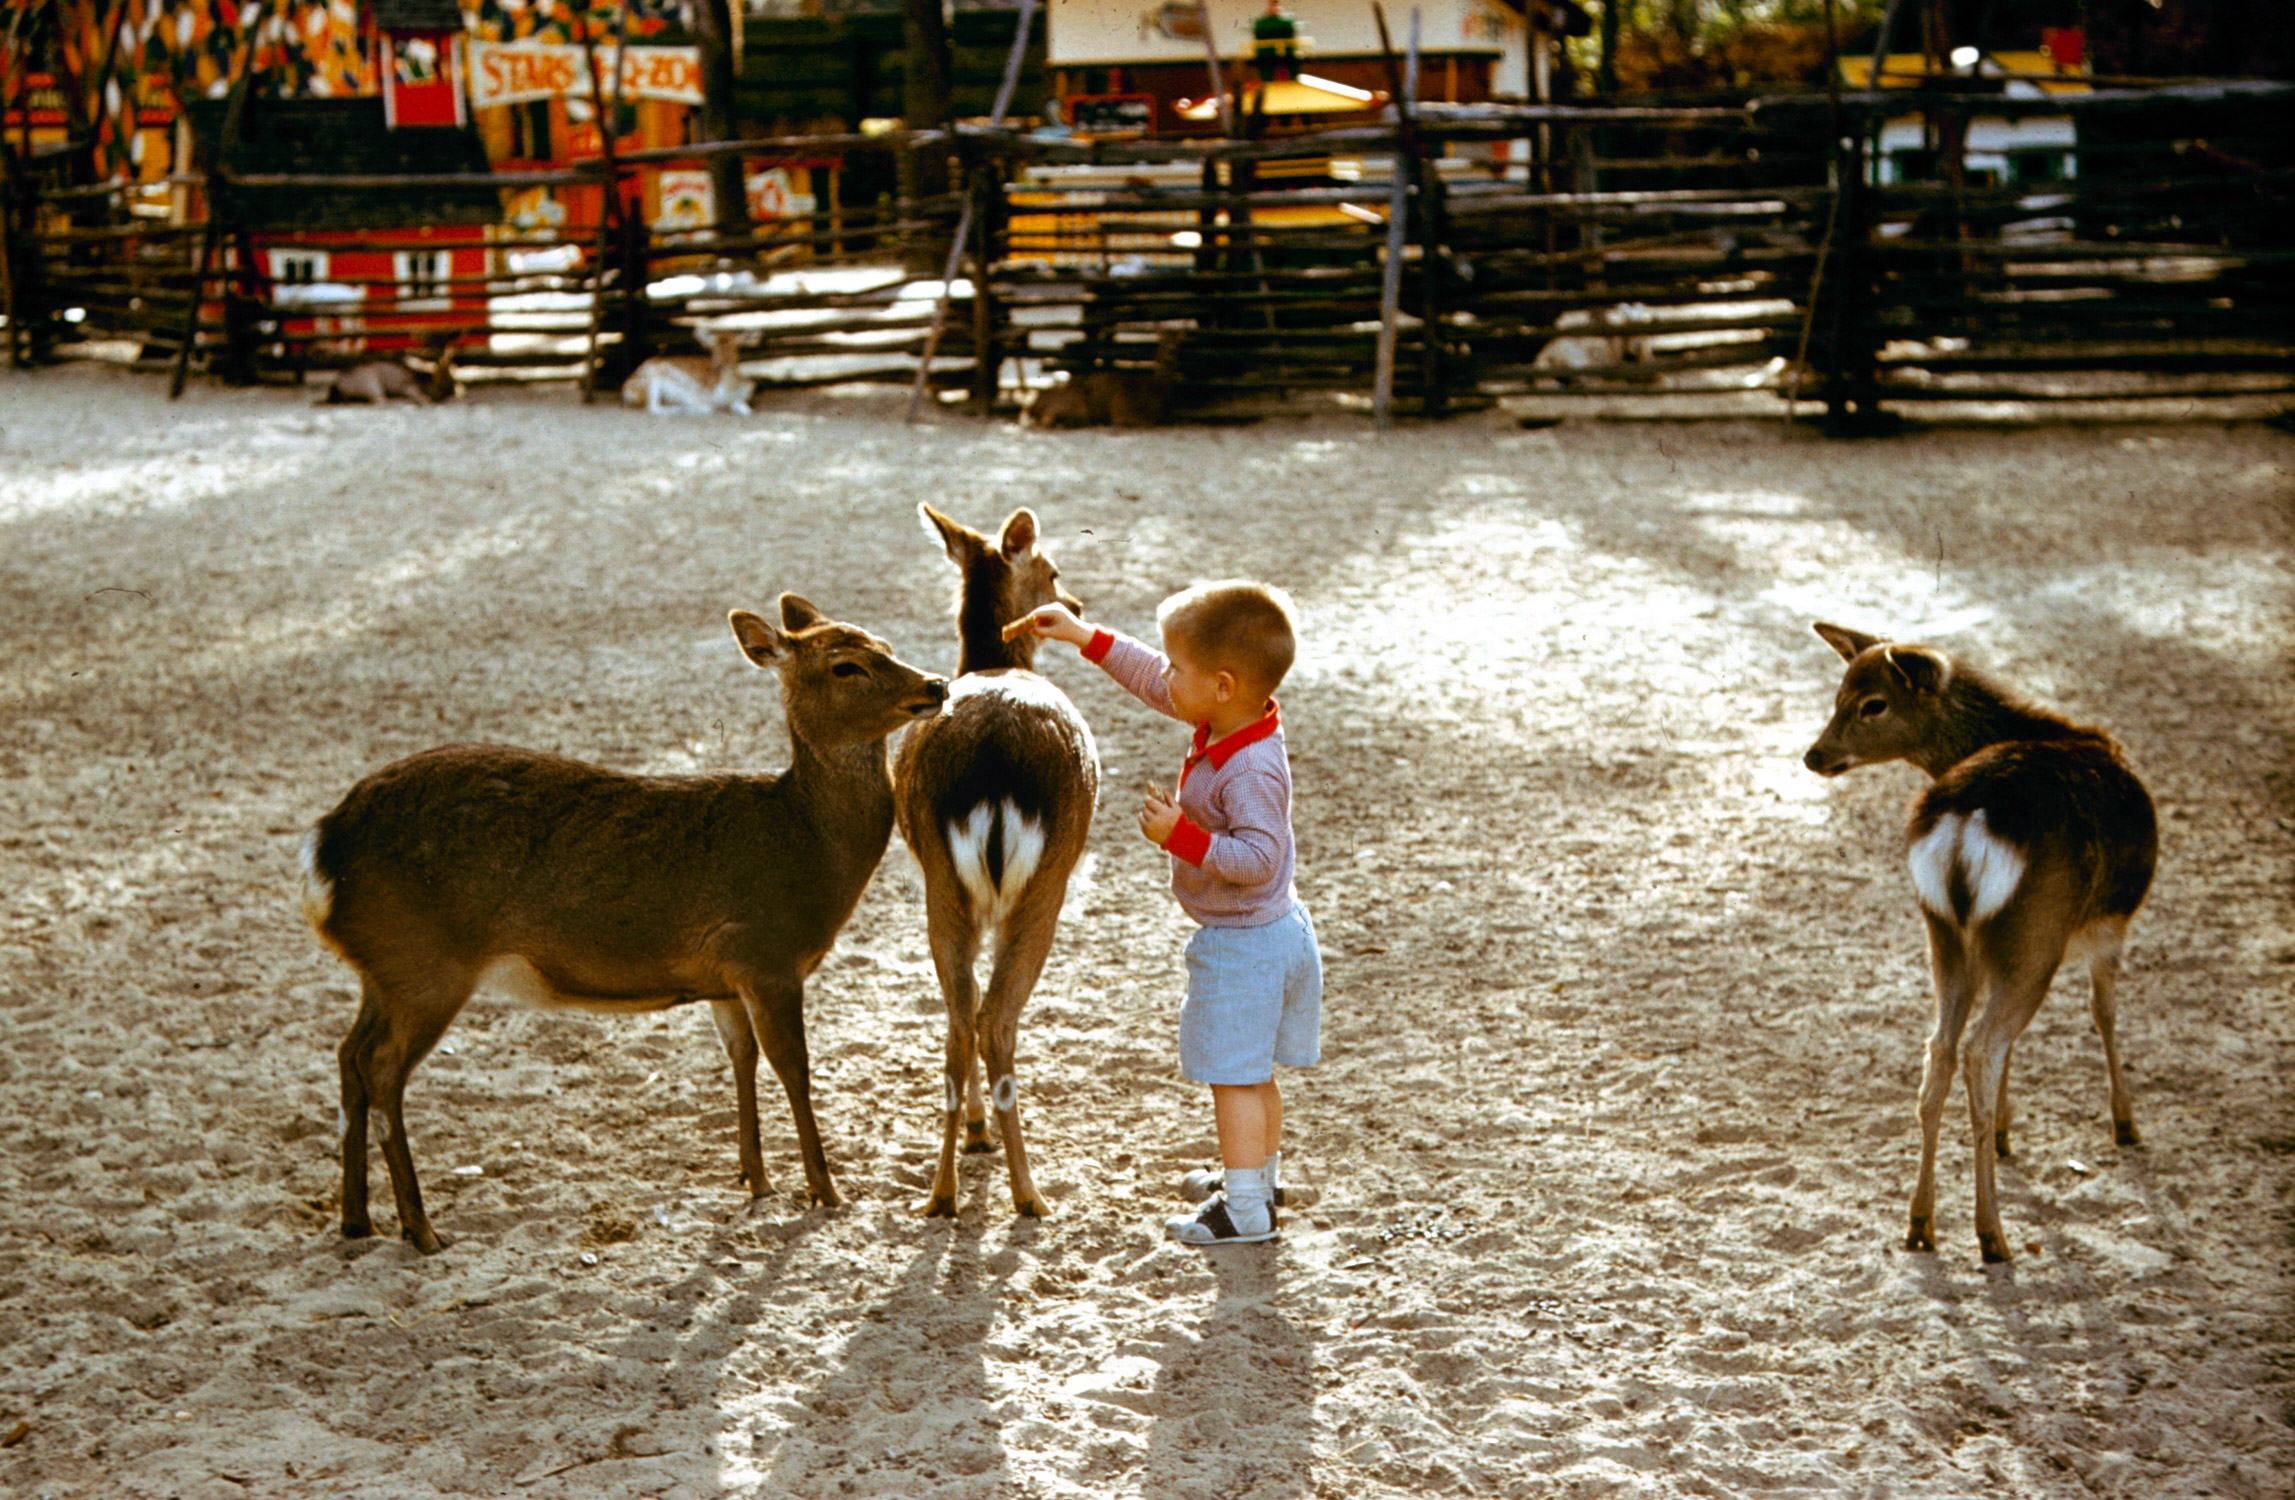 A young boy plays with a fawn and deer at a petting zoo, 1962.